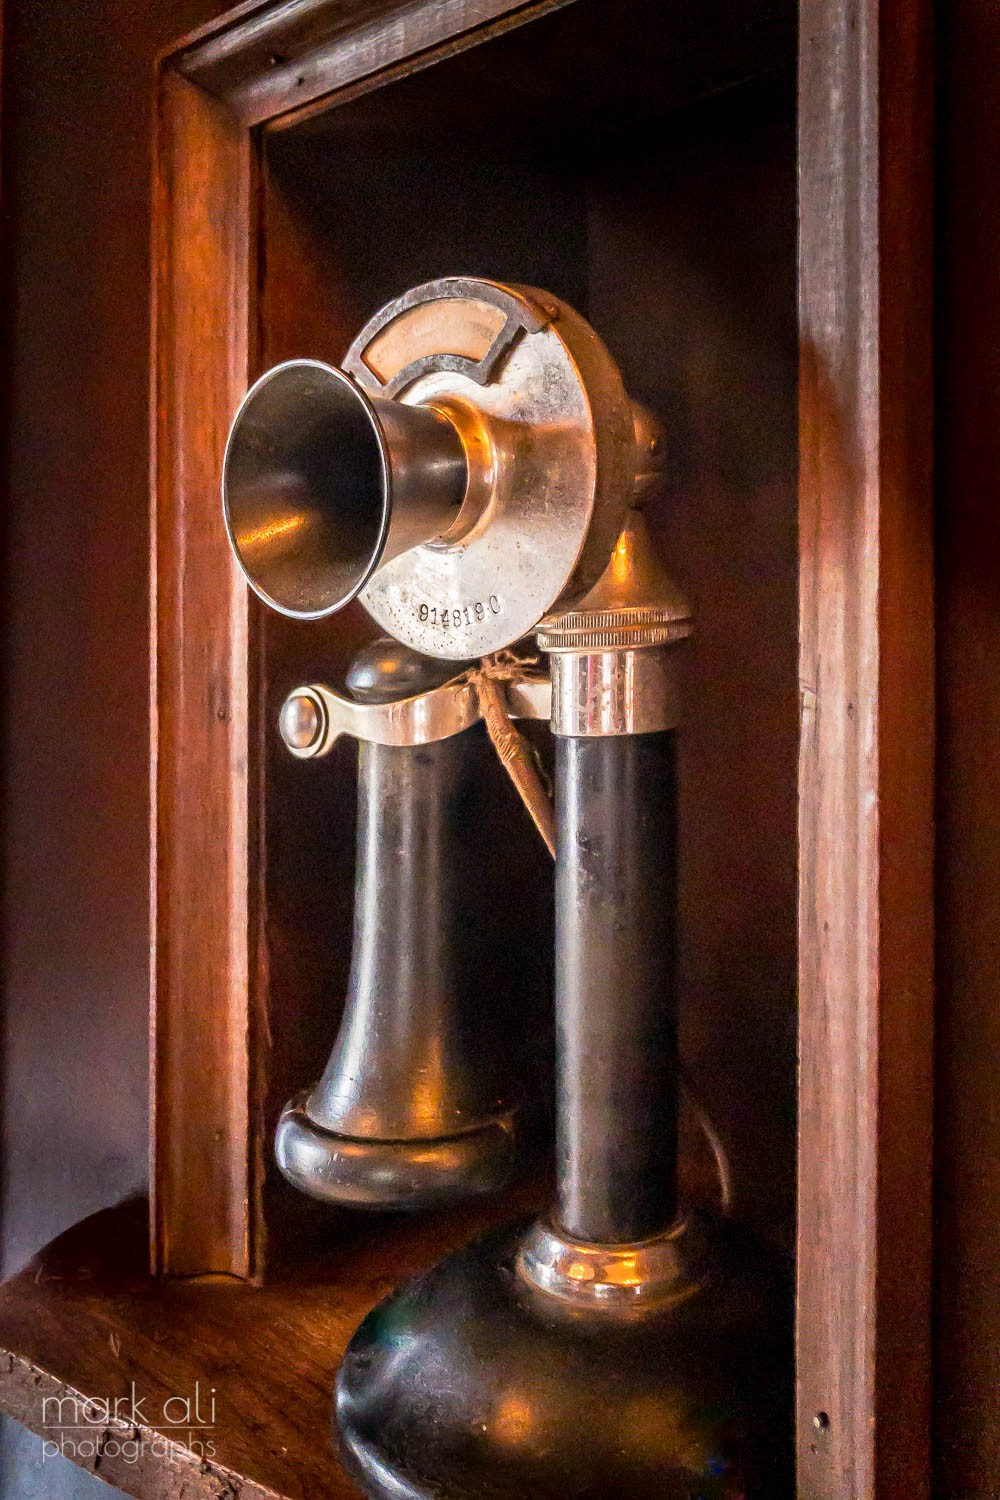 Photo of an old-fashioned telephone, in color.